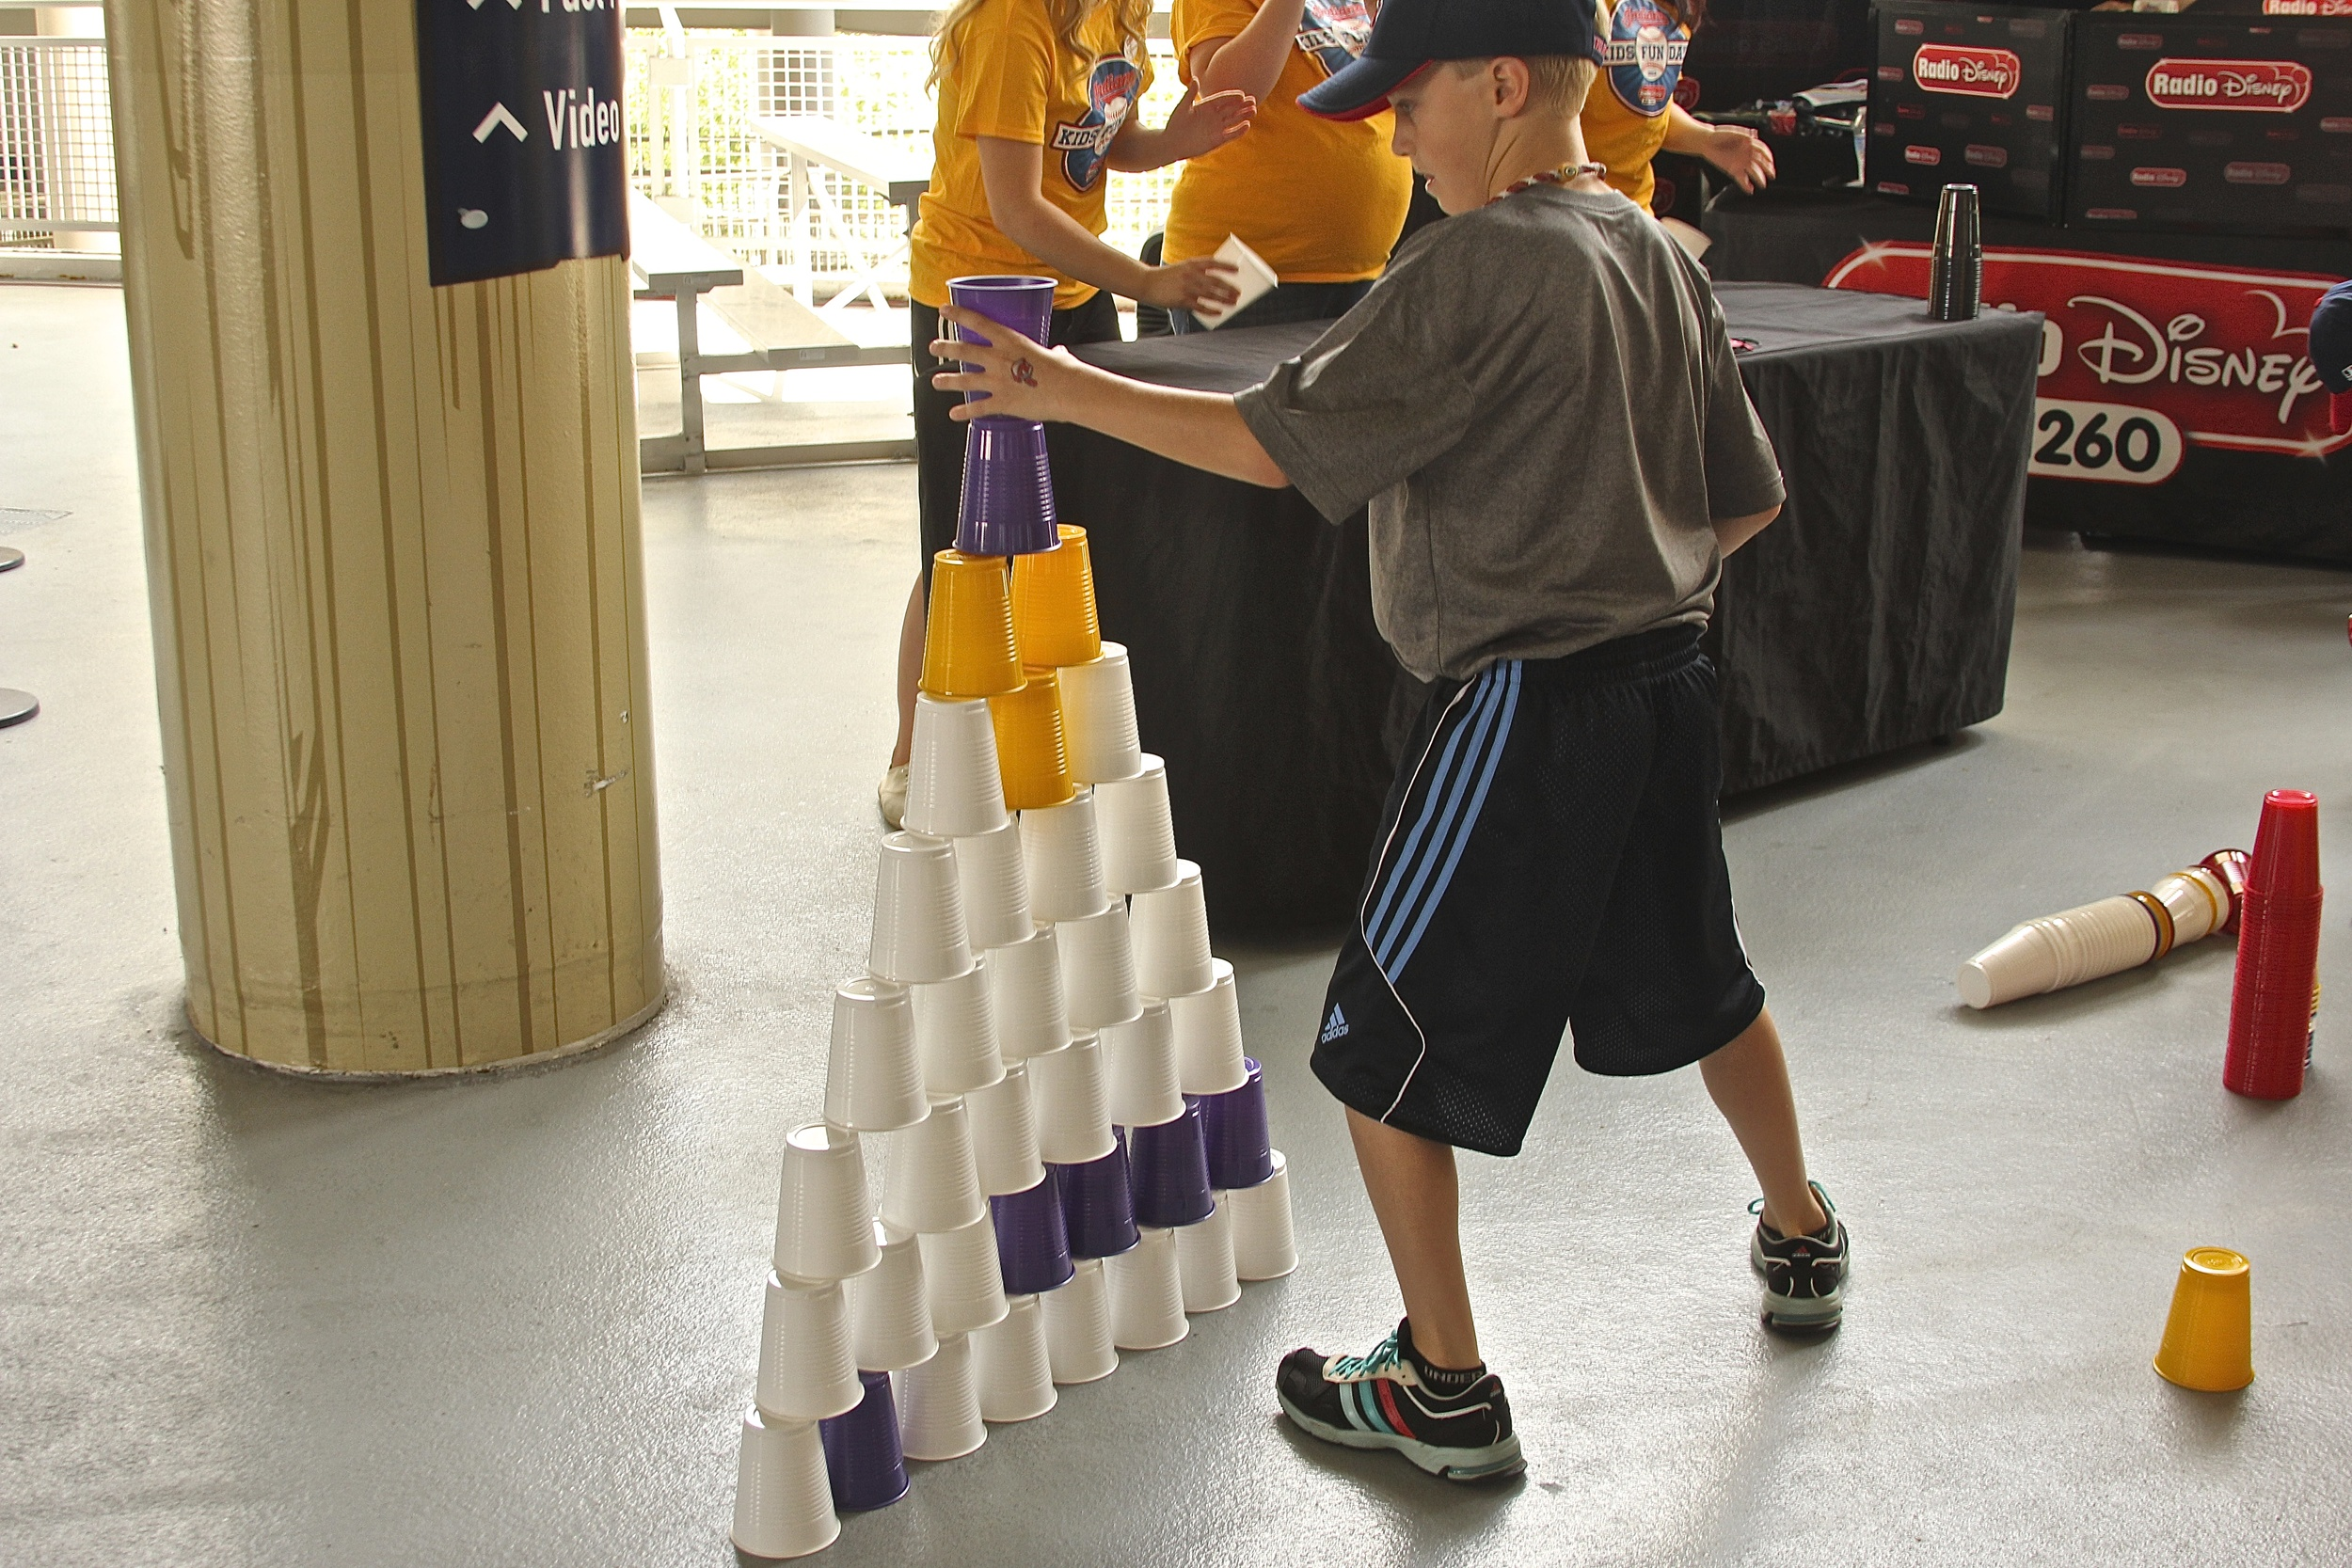 Stack those cups!